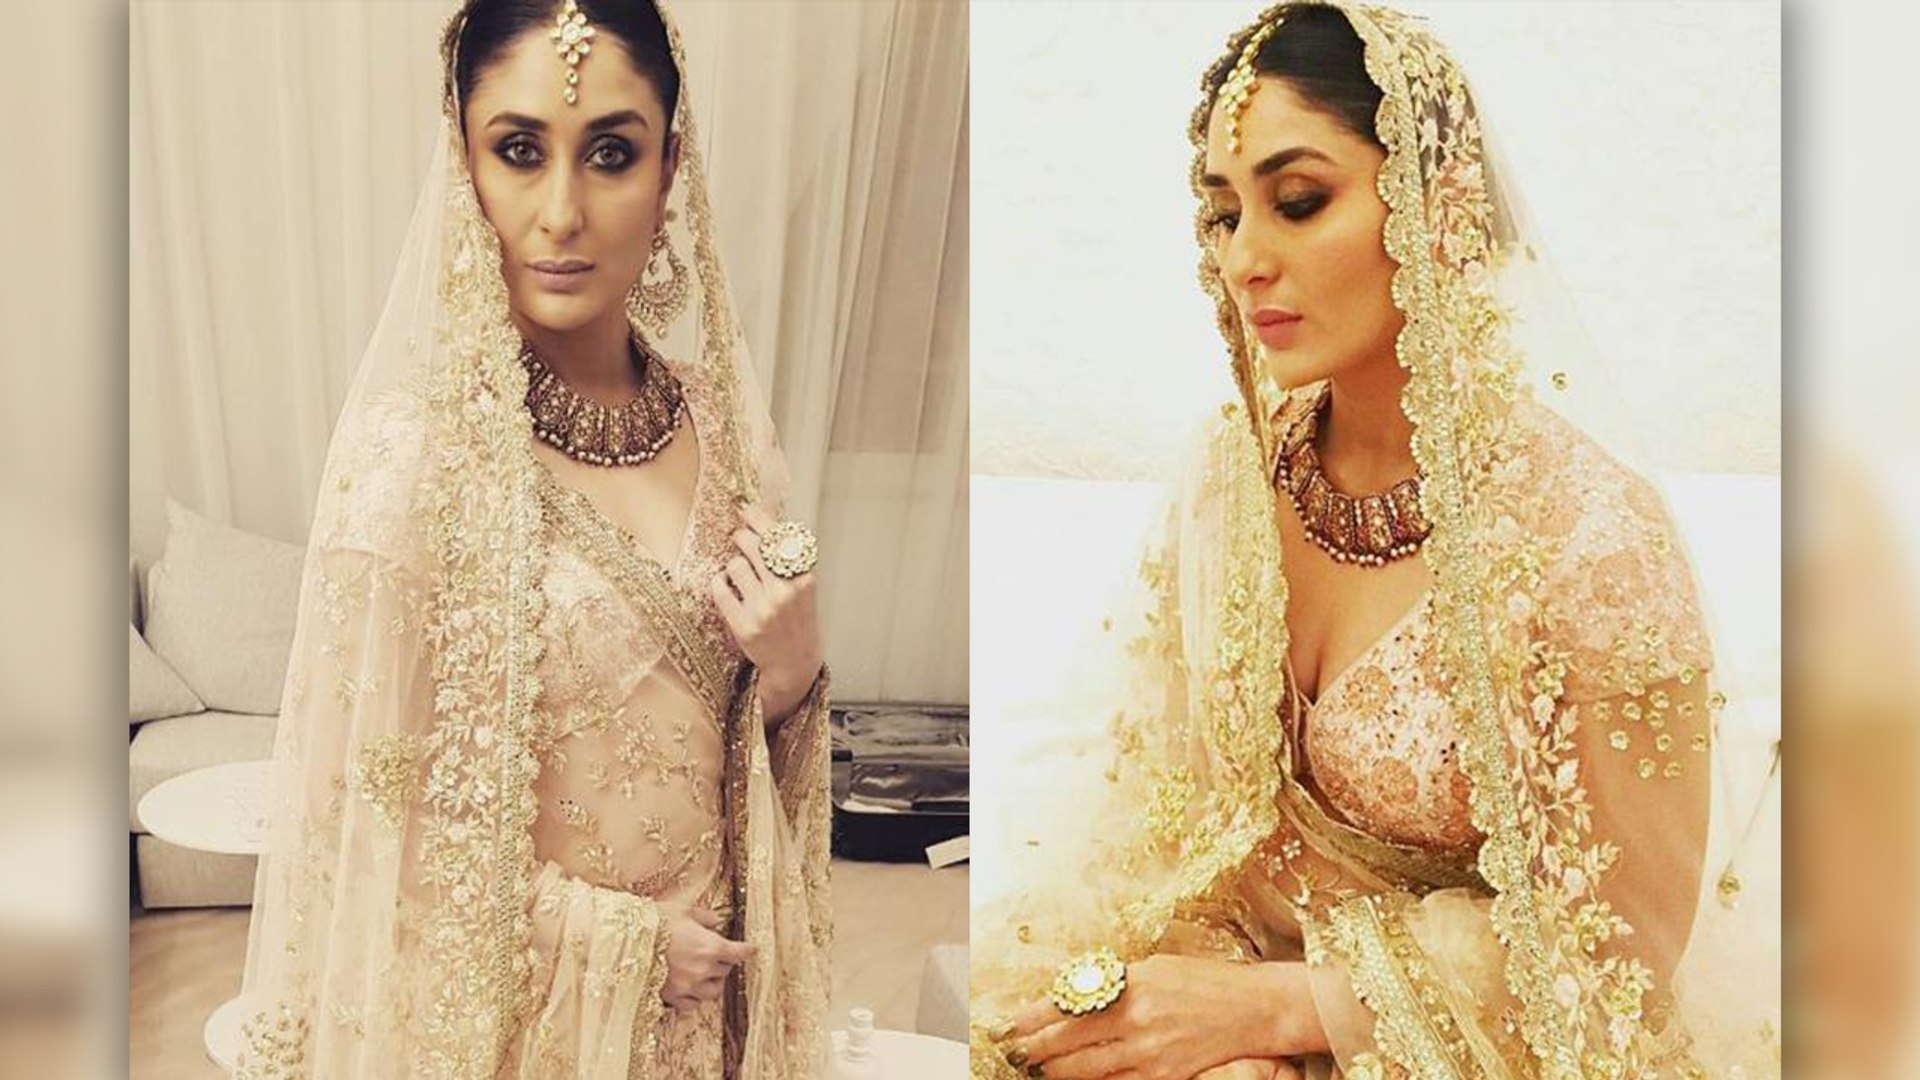 Kareena Kapoor FIRST Rampwalk In 2018, Turns Bride In Doha, Qatar | Shop Qatar Festival 2018